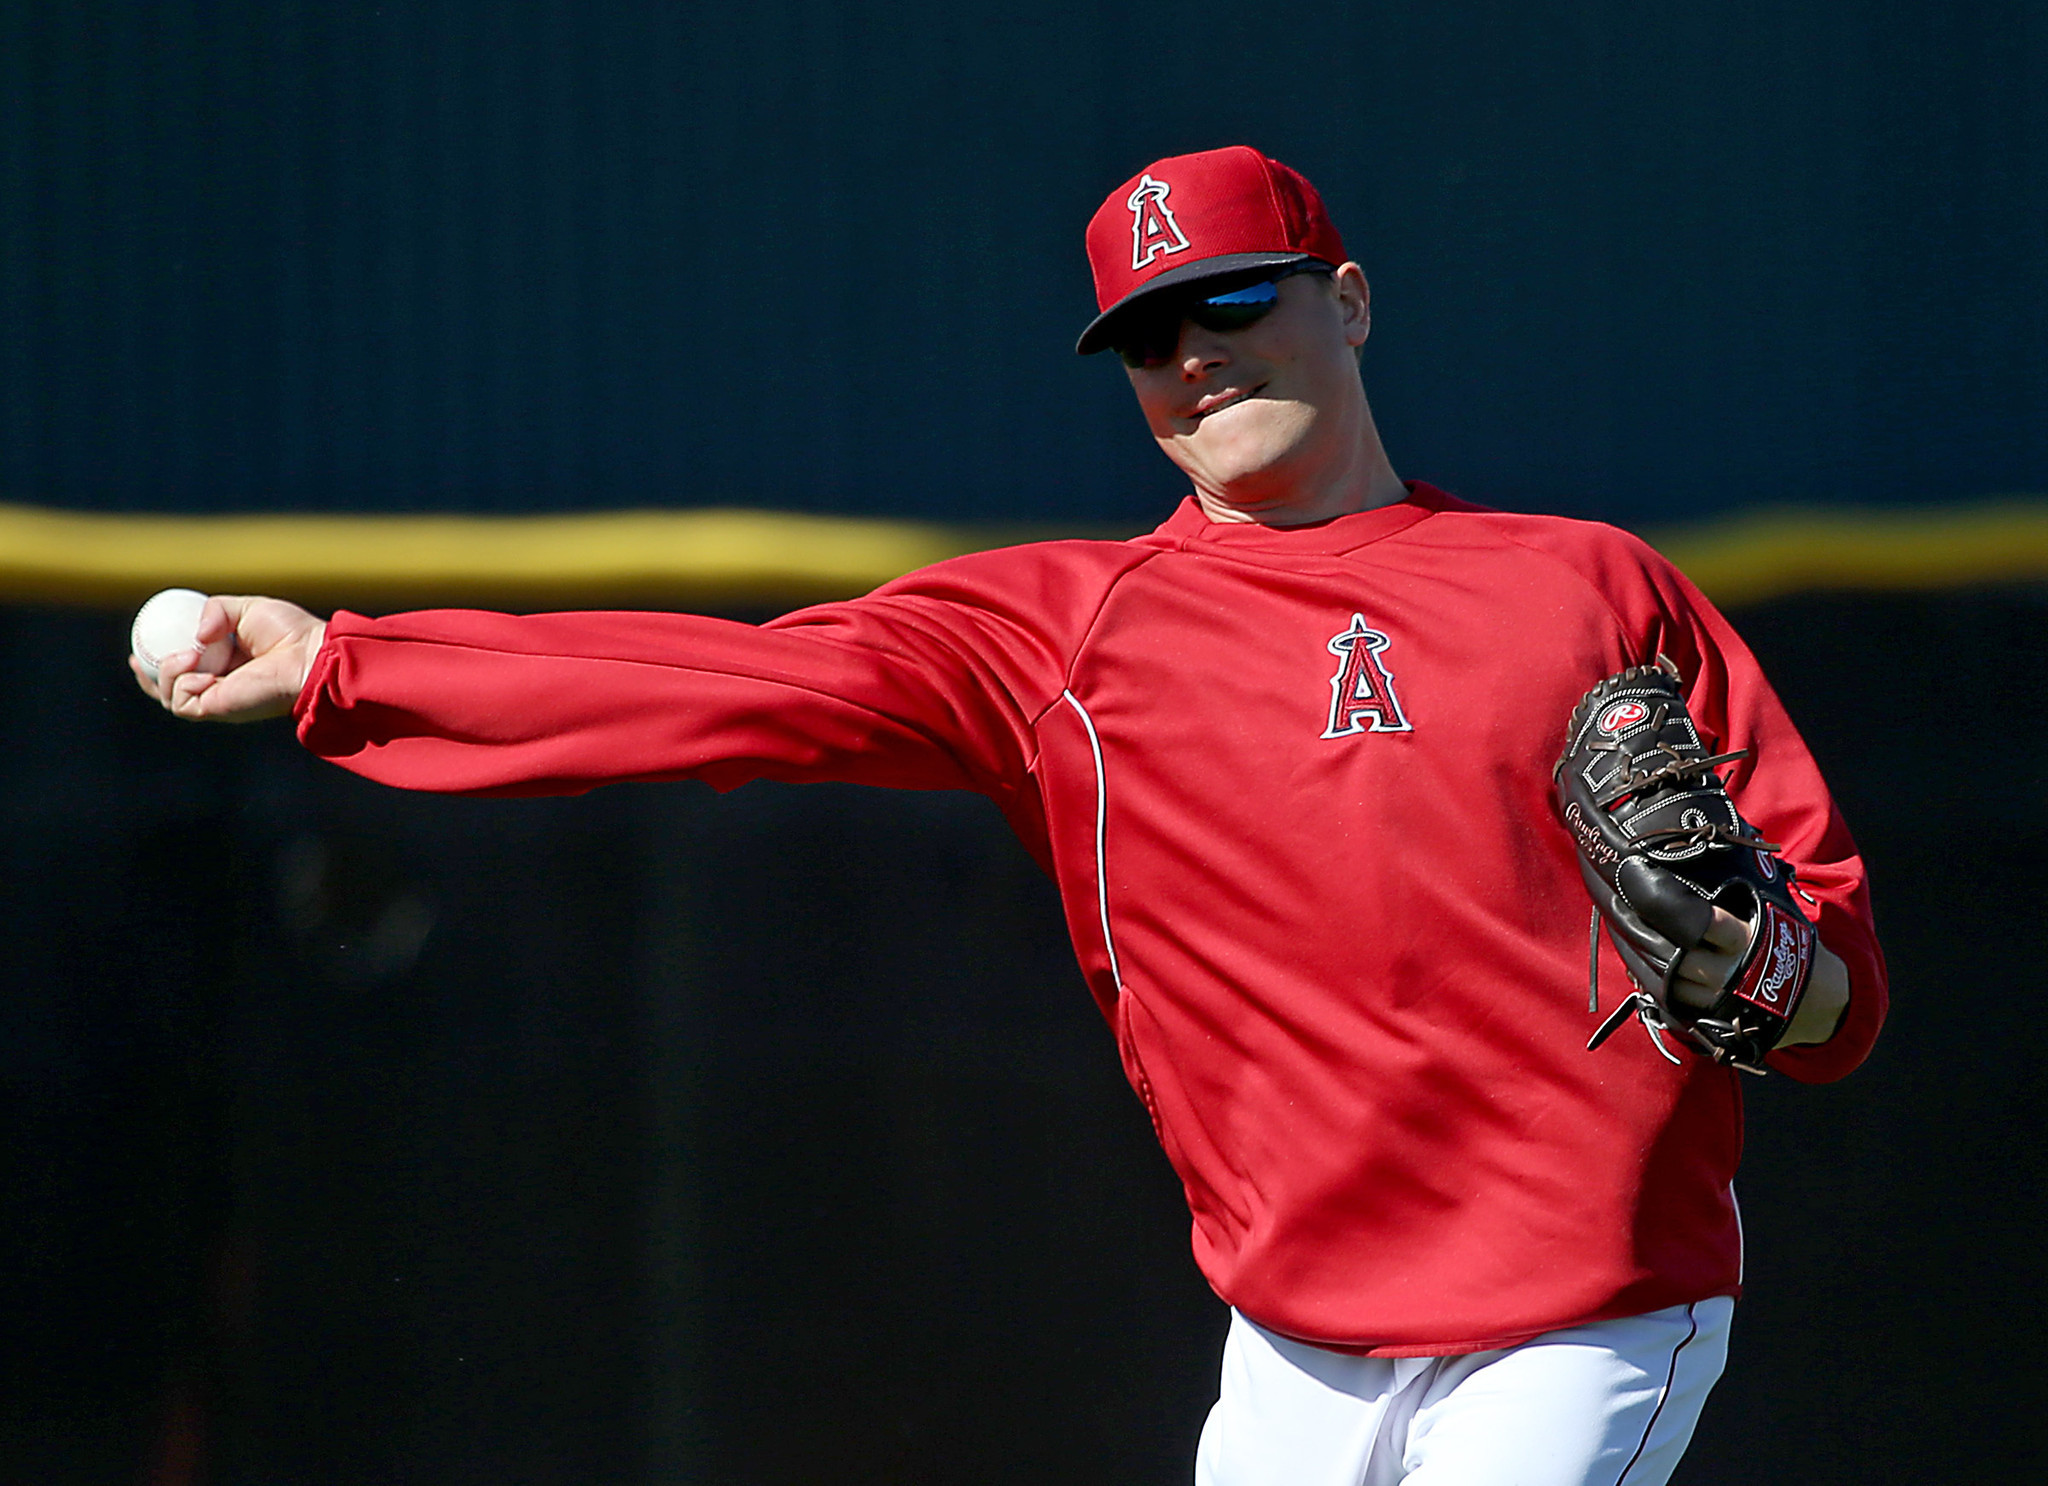 Angels Joe Smith is not nearly as mon as his name LA Times